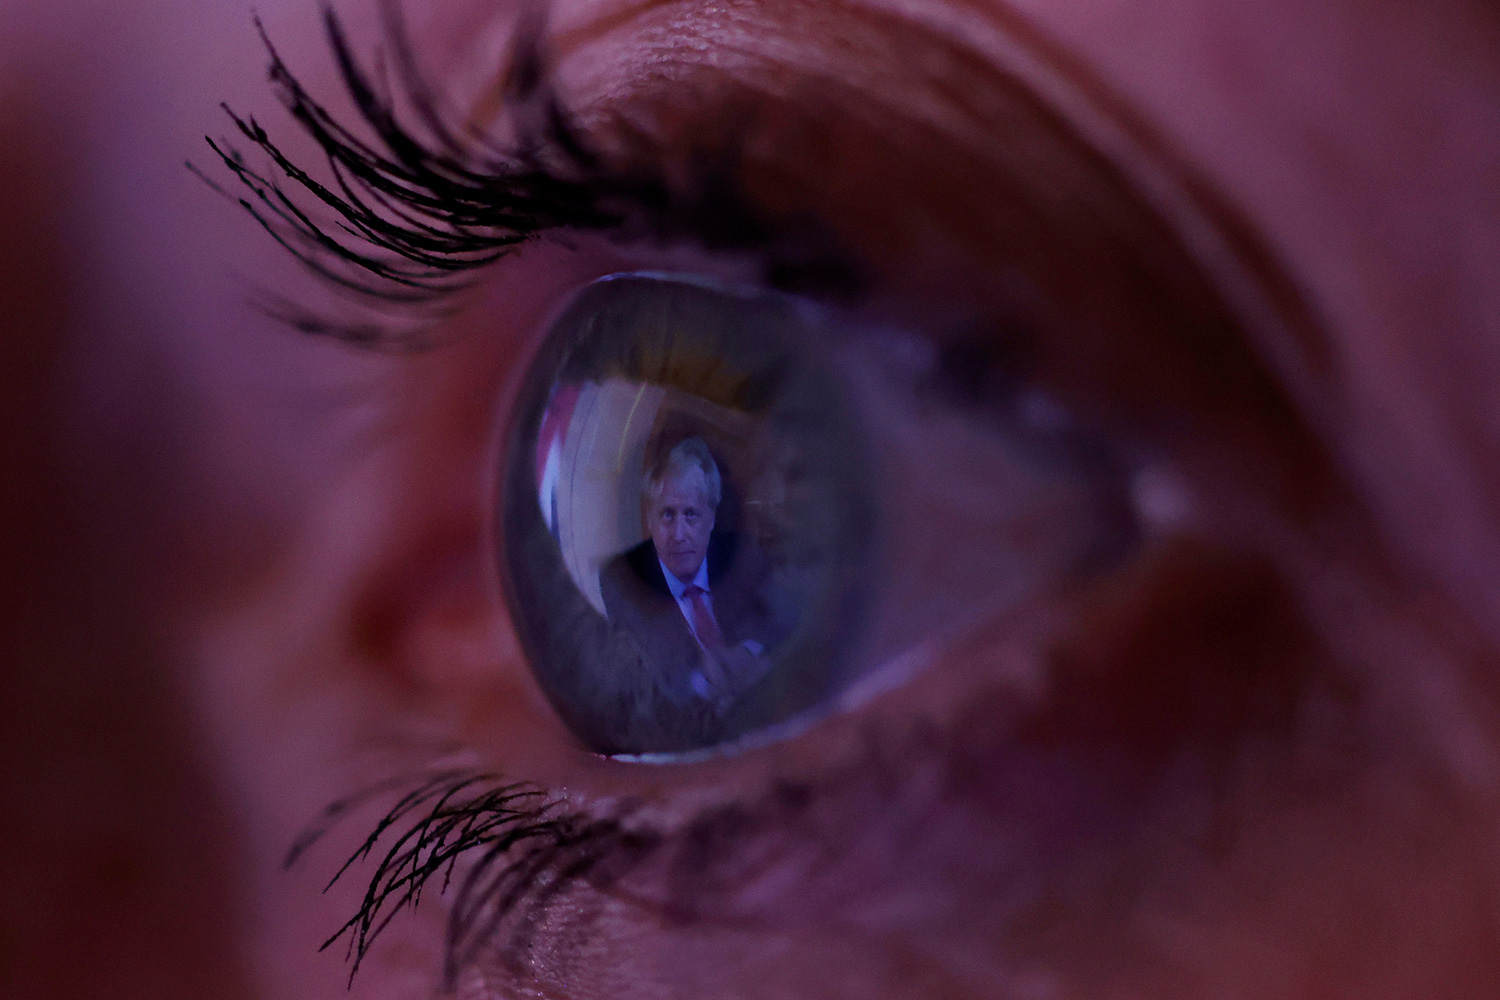 Britain's Prime Minister Boris Johnson is reflected in a woman's eye as she watches his address to the nation following the outbreak of coronavirus in Manchester, England, on September 22, 2020. The photo shows a macro lens image of an eye with the image of the PM reflected in it. REUTERS/Phil Noble